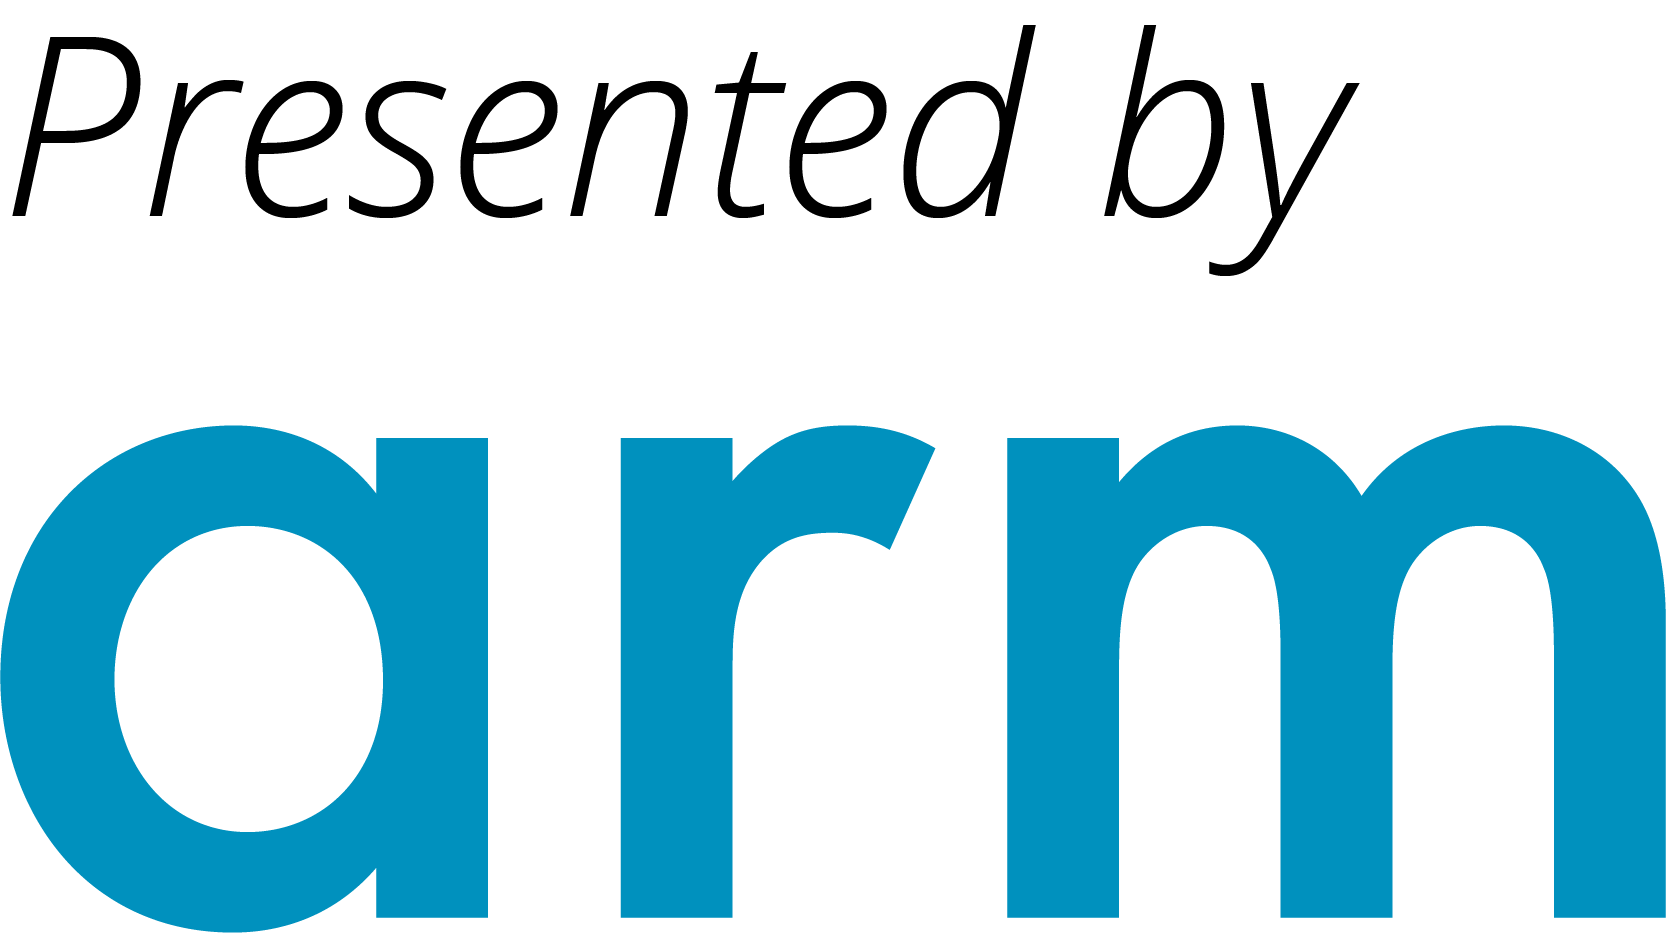 presented by arm